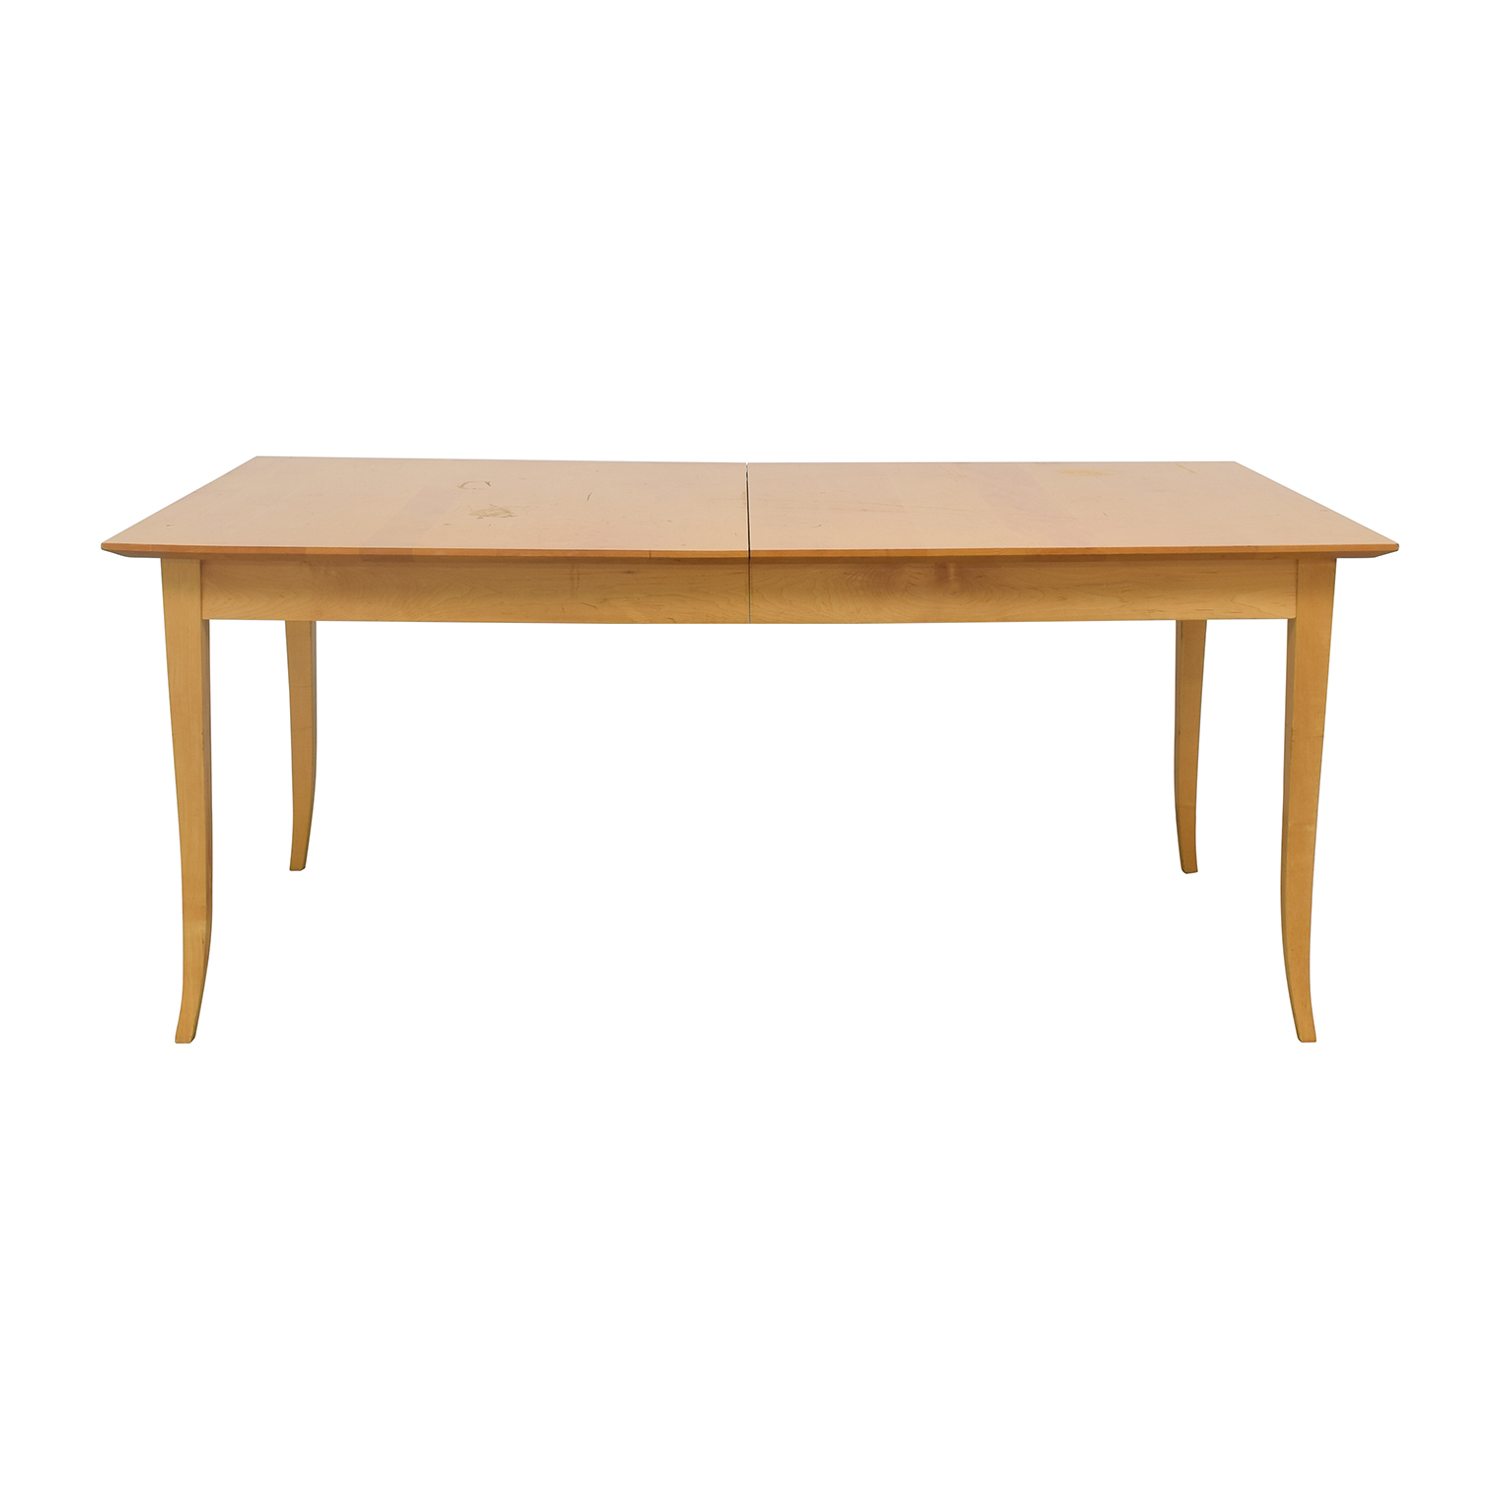 shop Room & Board Room & Board Extension Table online